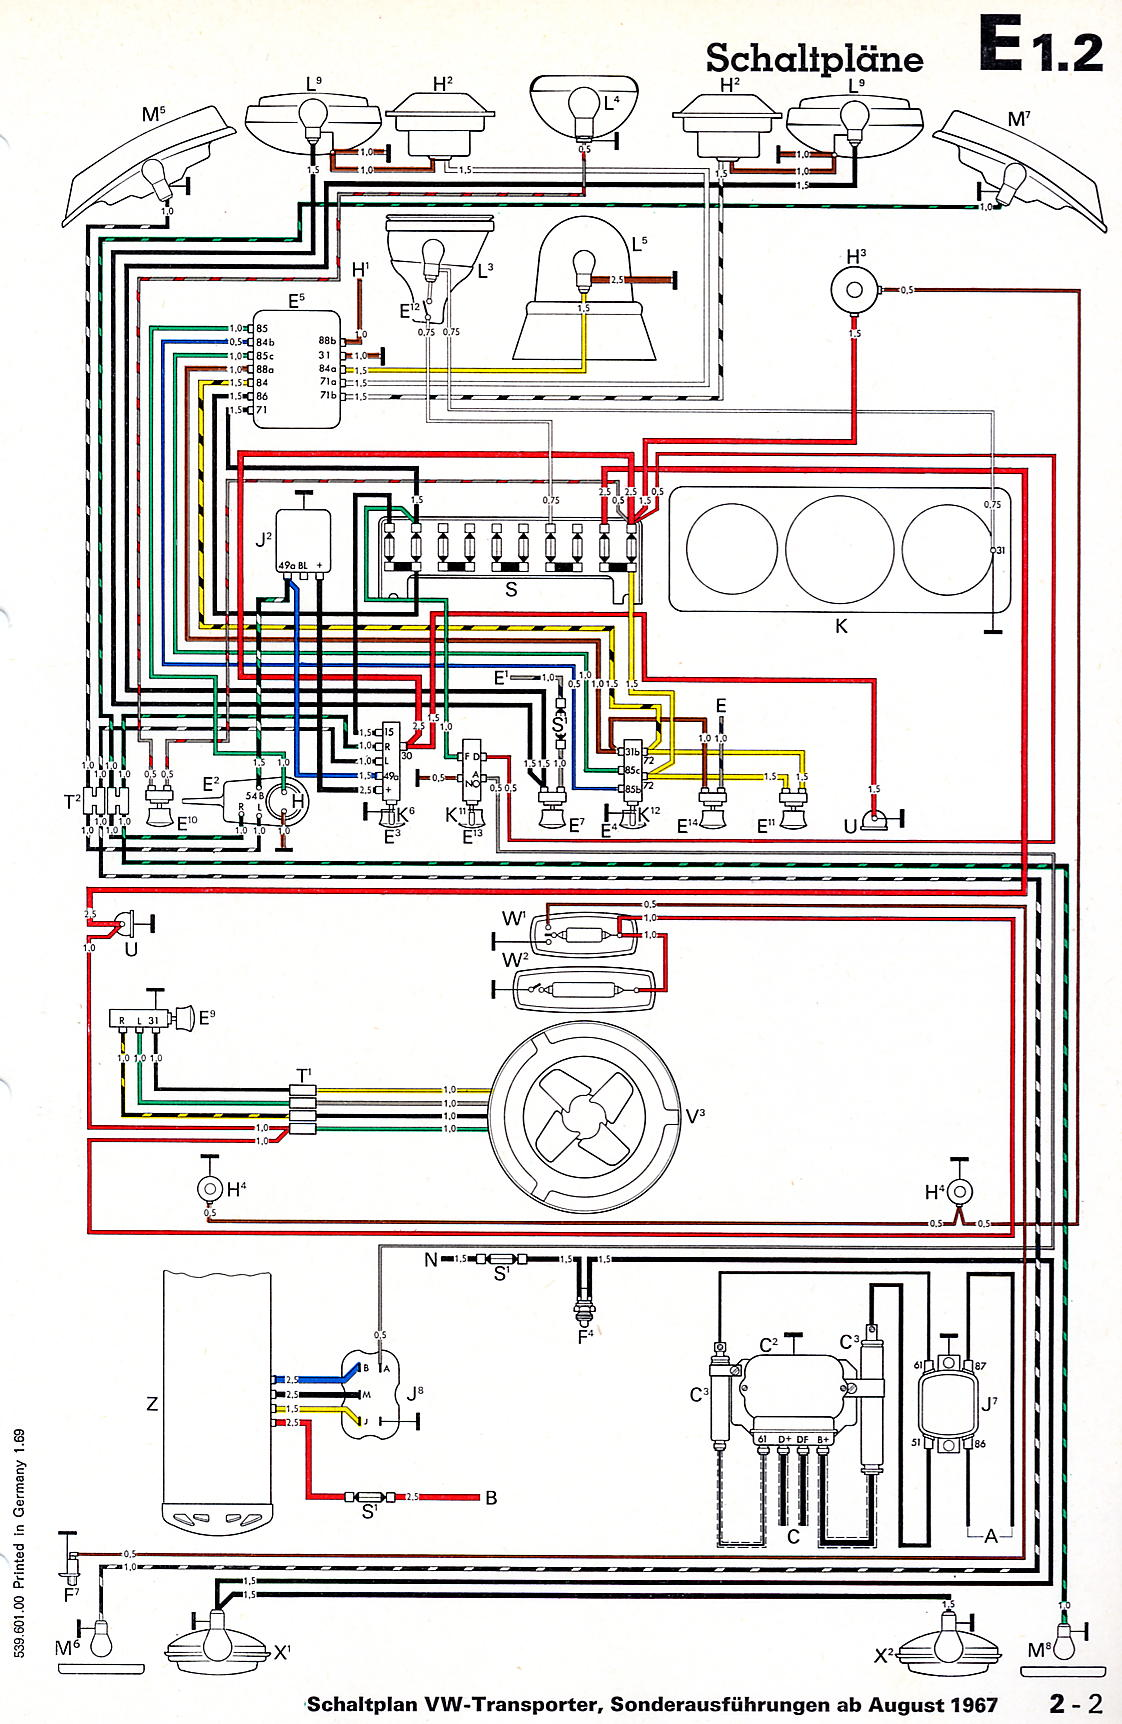 Vw Bus Wiring Diagram 1986 Reveolution Of 2002 Beetle Alternator Harness Vintagebus Com And Other Diagrams Rh 1974 1975